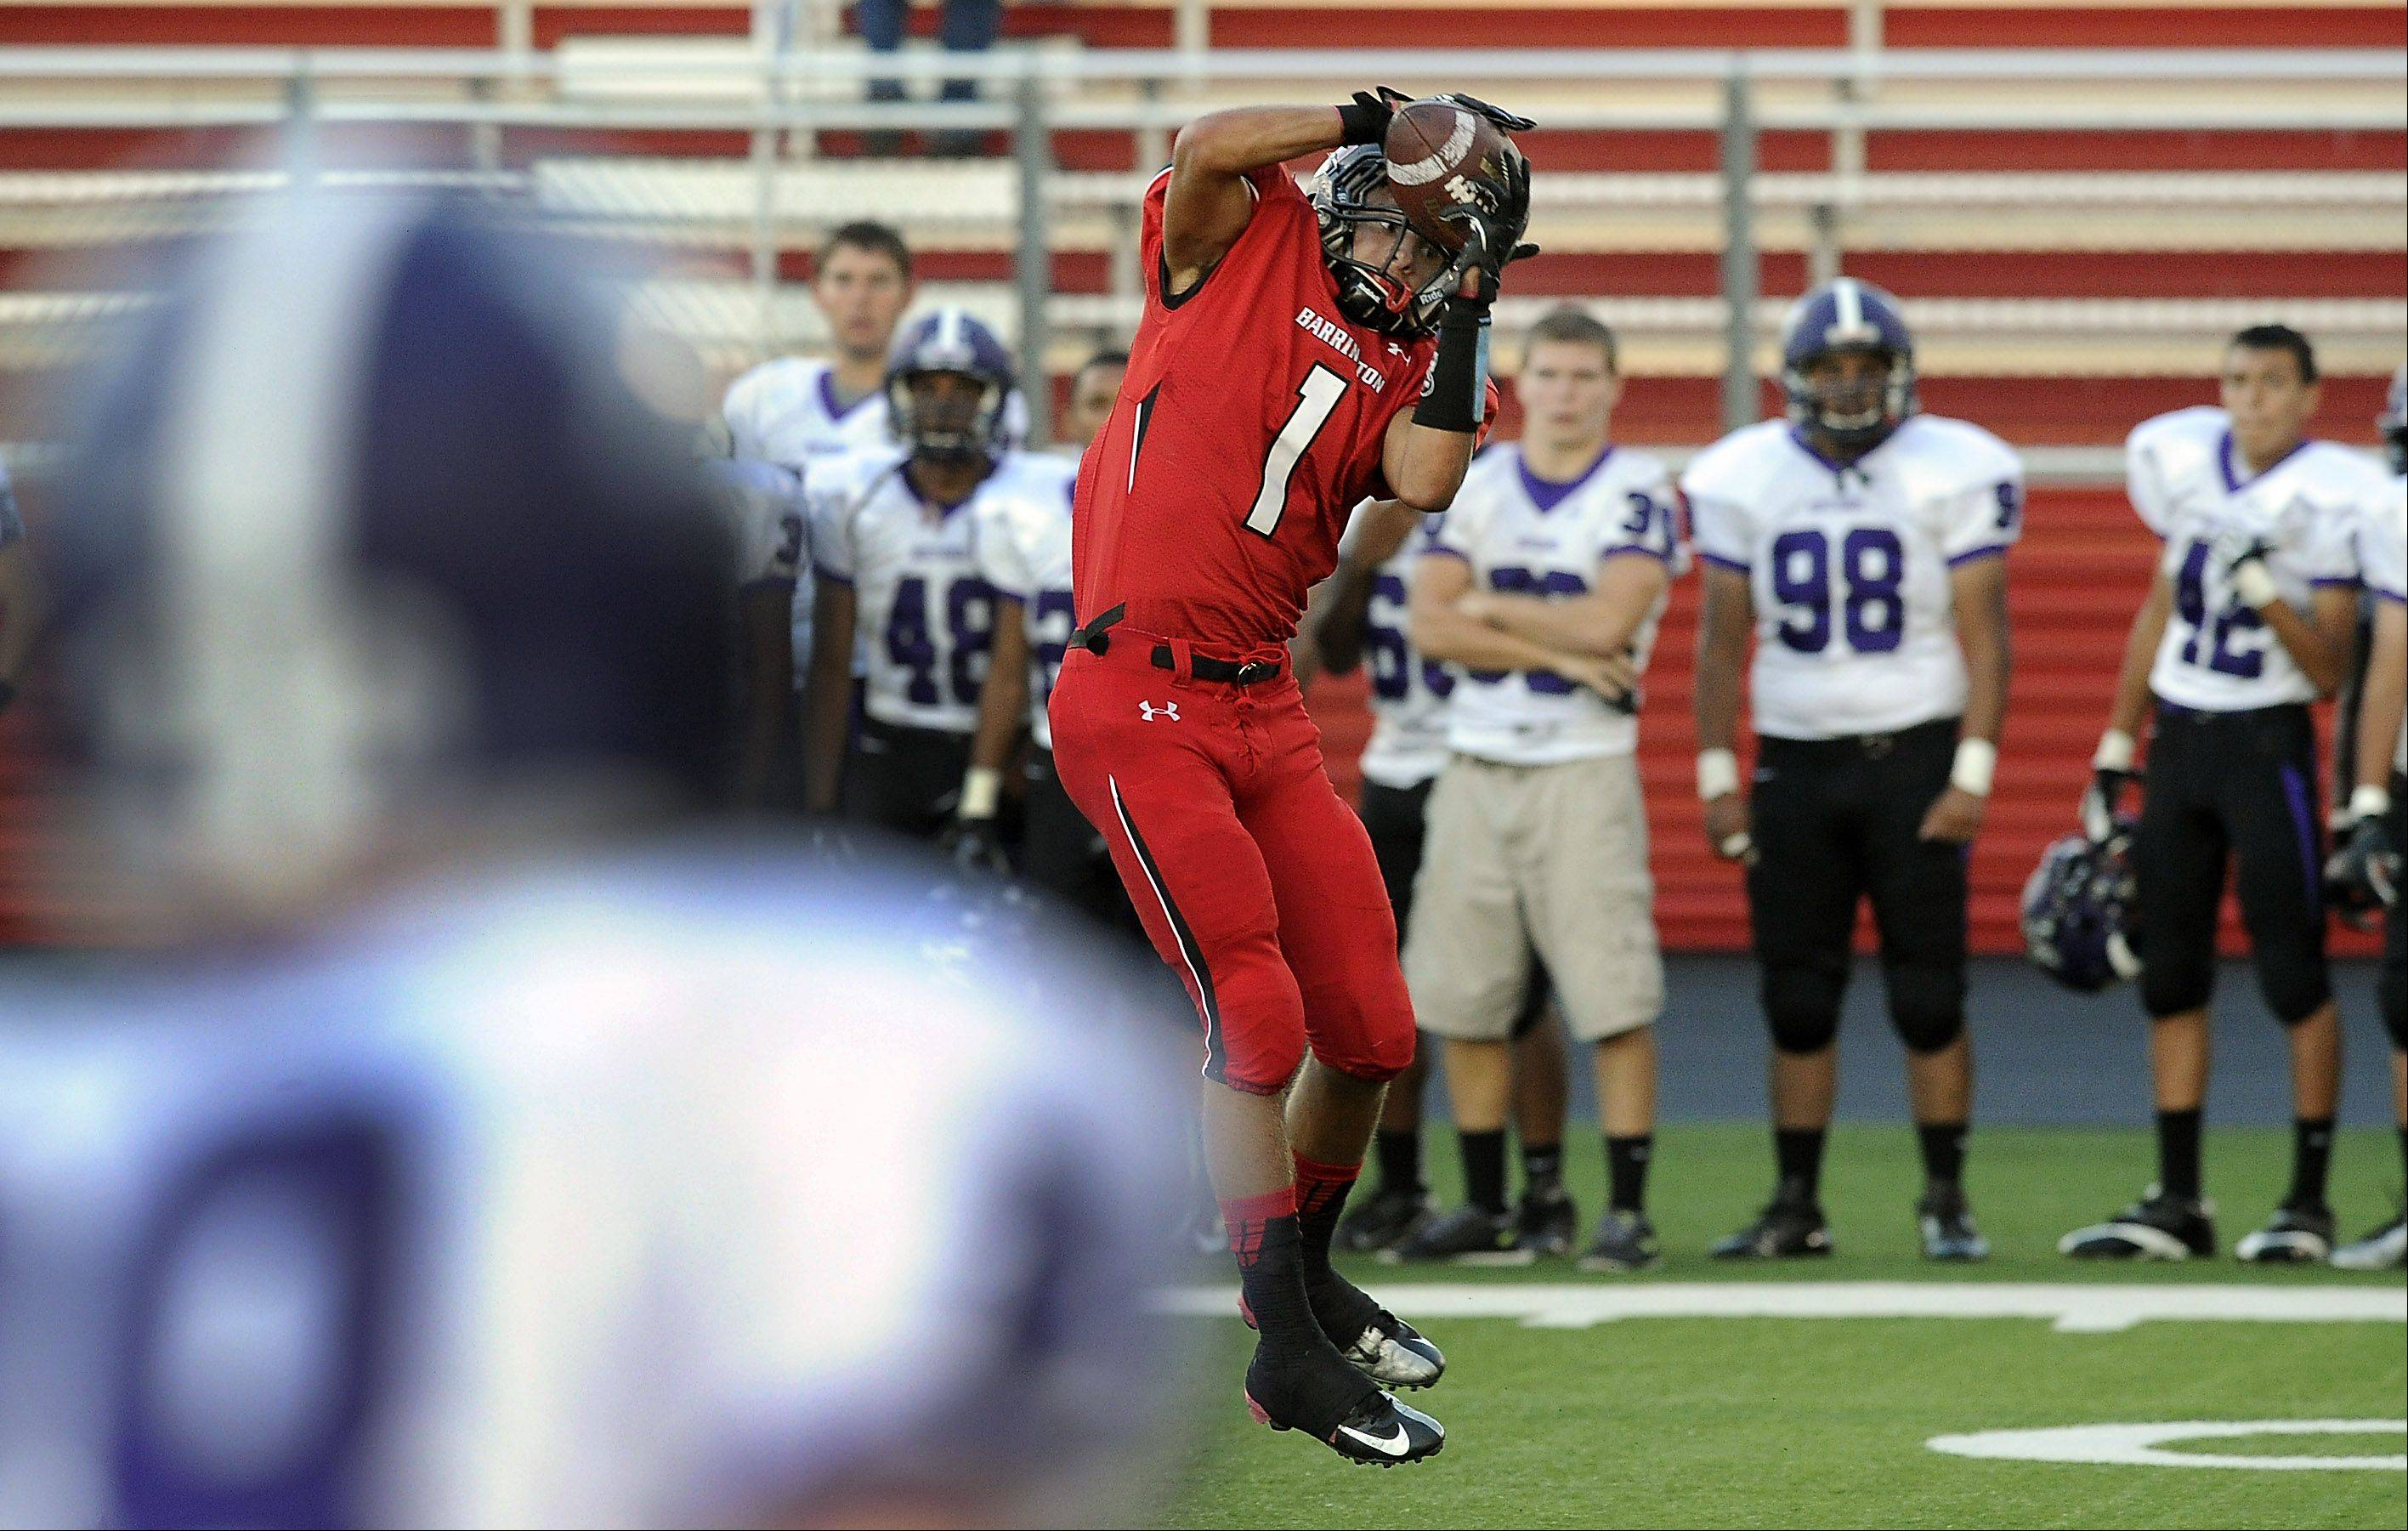 Barrington's Scotty Miller makes a catch and runs for a touchdown in the first quarter.